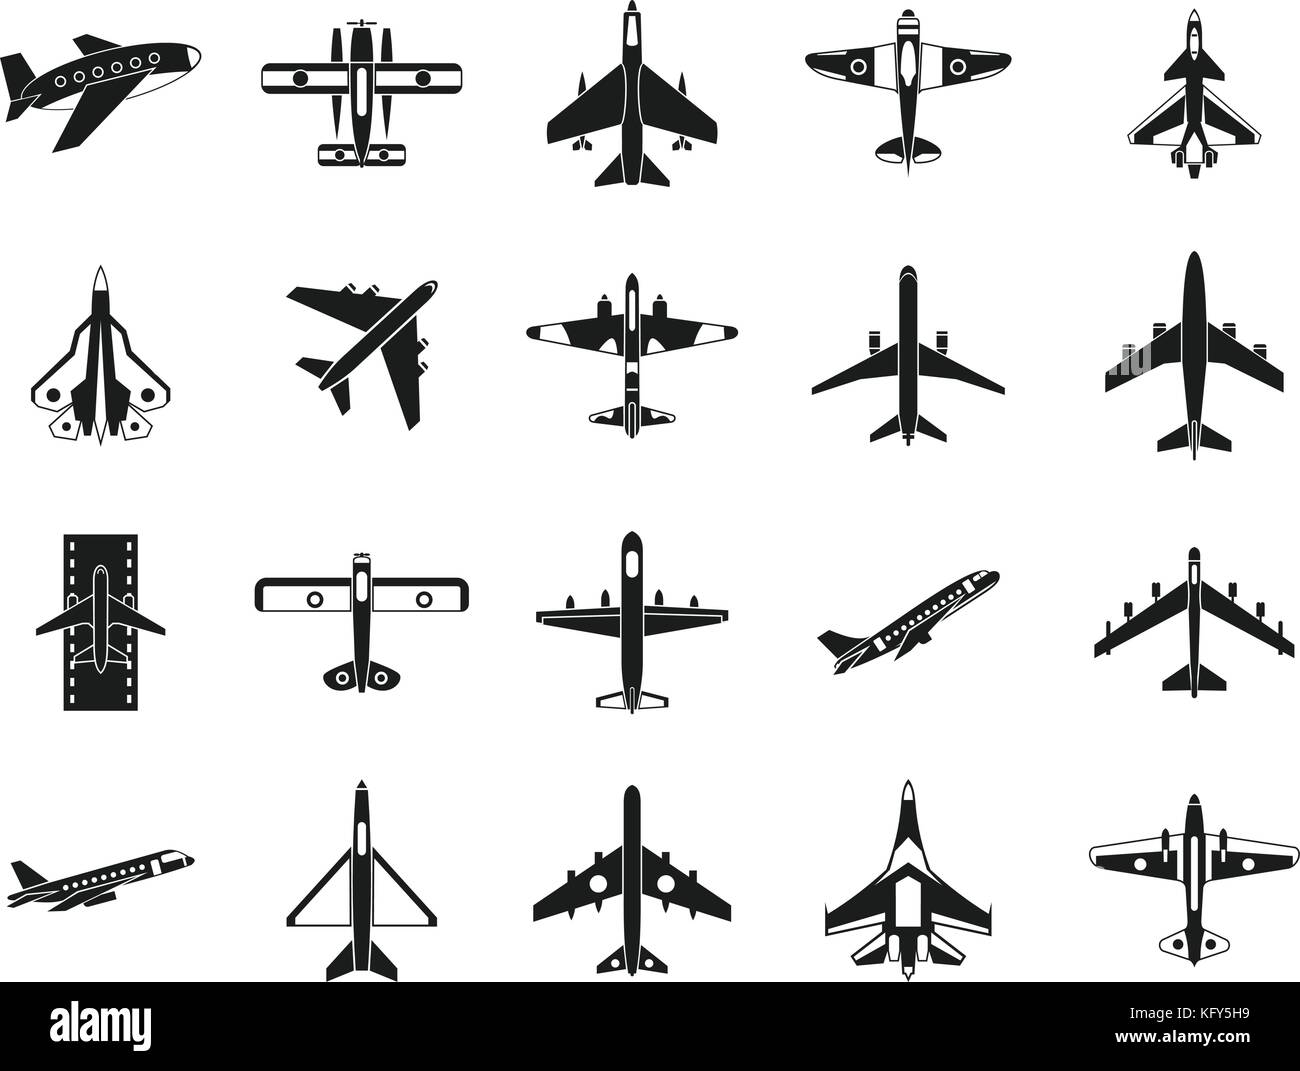 Plane icon set, simple style - Stock Image